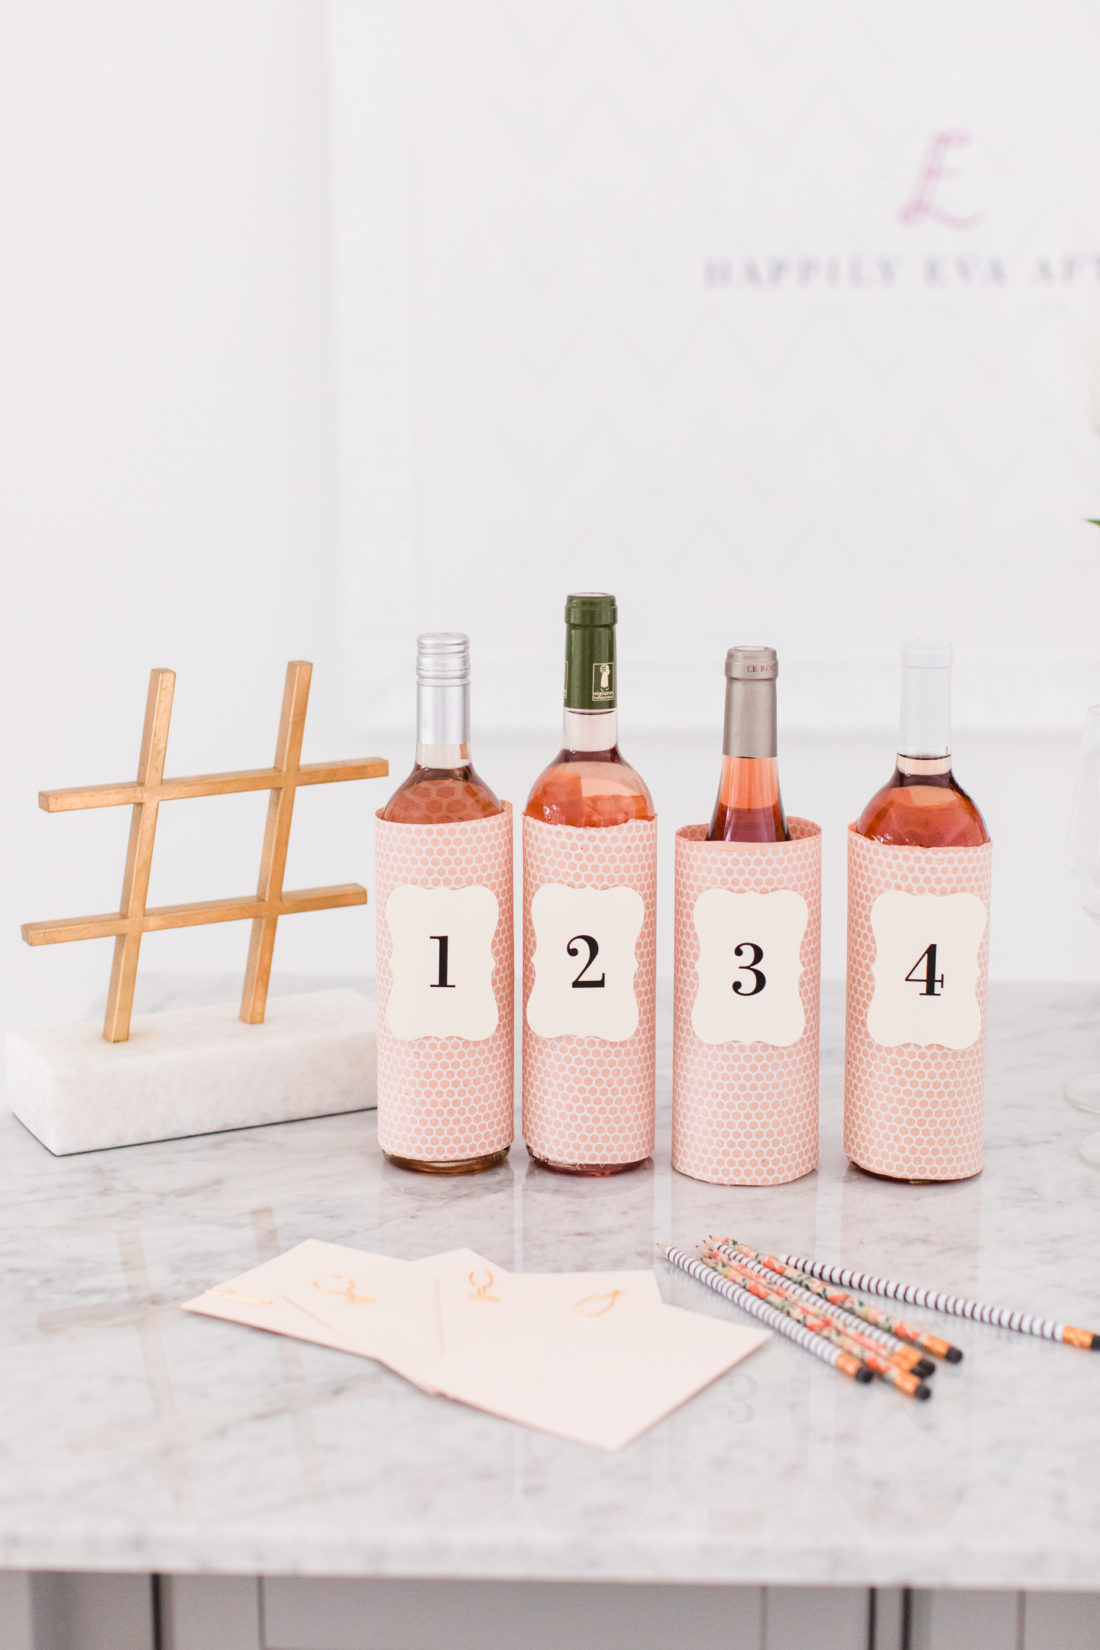 Eva Amurri Martino hosts a Rosé tasting party at her Conecticut home, and wraps varying bottles of Rosé in pretty pink paper